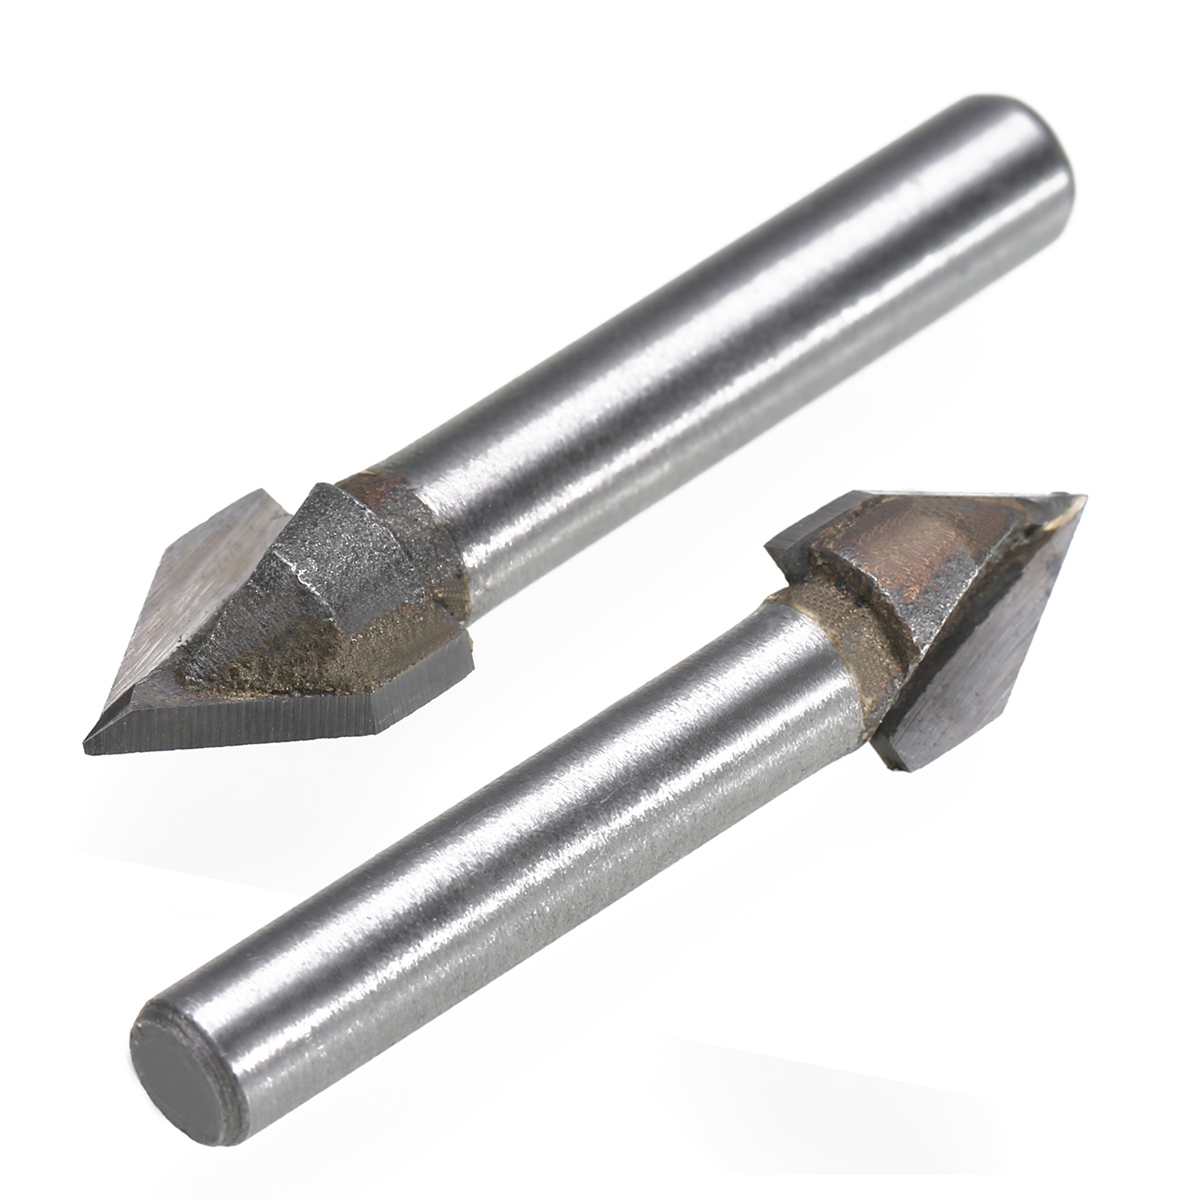 SHENYUAN 1pc 60 Degree V Groove Bit 6x10mm Carbide Milling Cutters CNC Router Engraving Woodworking Tool Chamfer End Mills